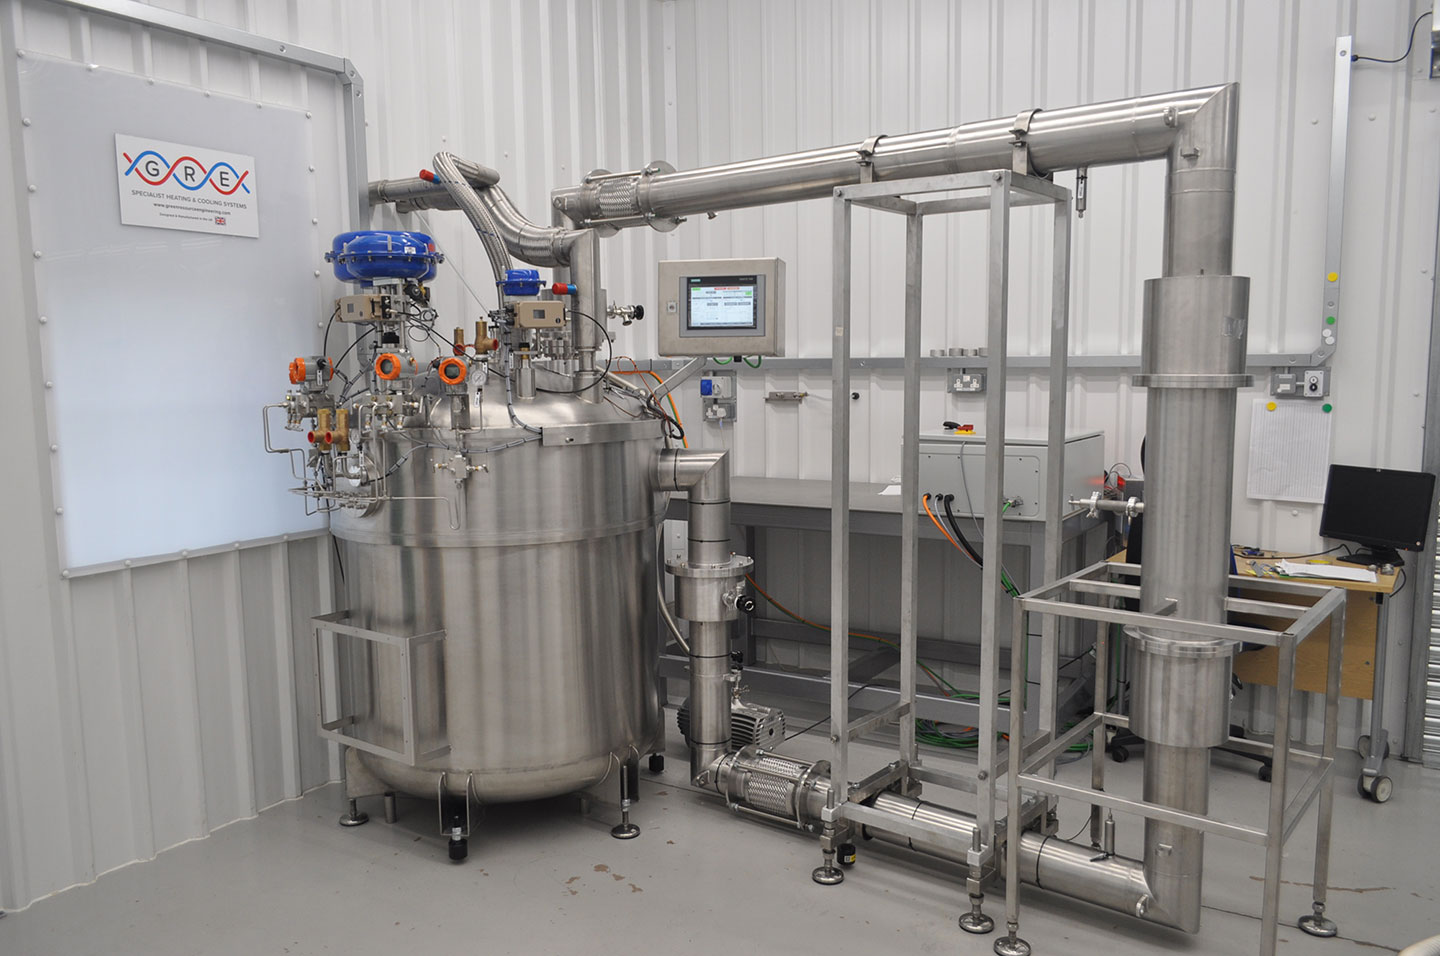 Cryogenic cooling systems